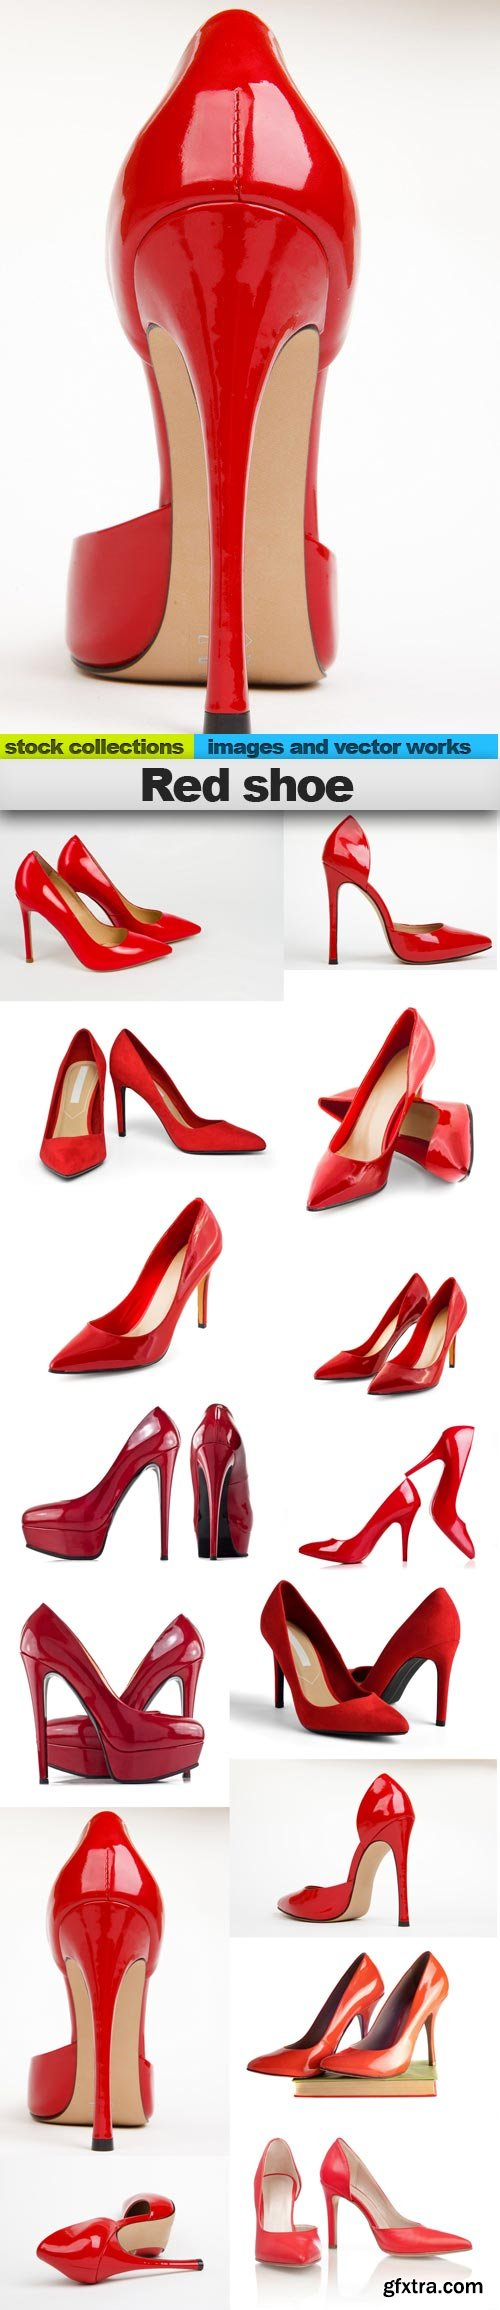 Red shoe, 15 x UHQ JPEG